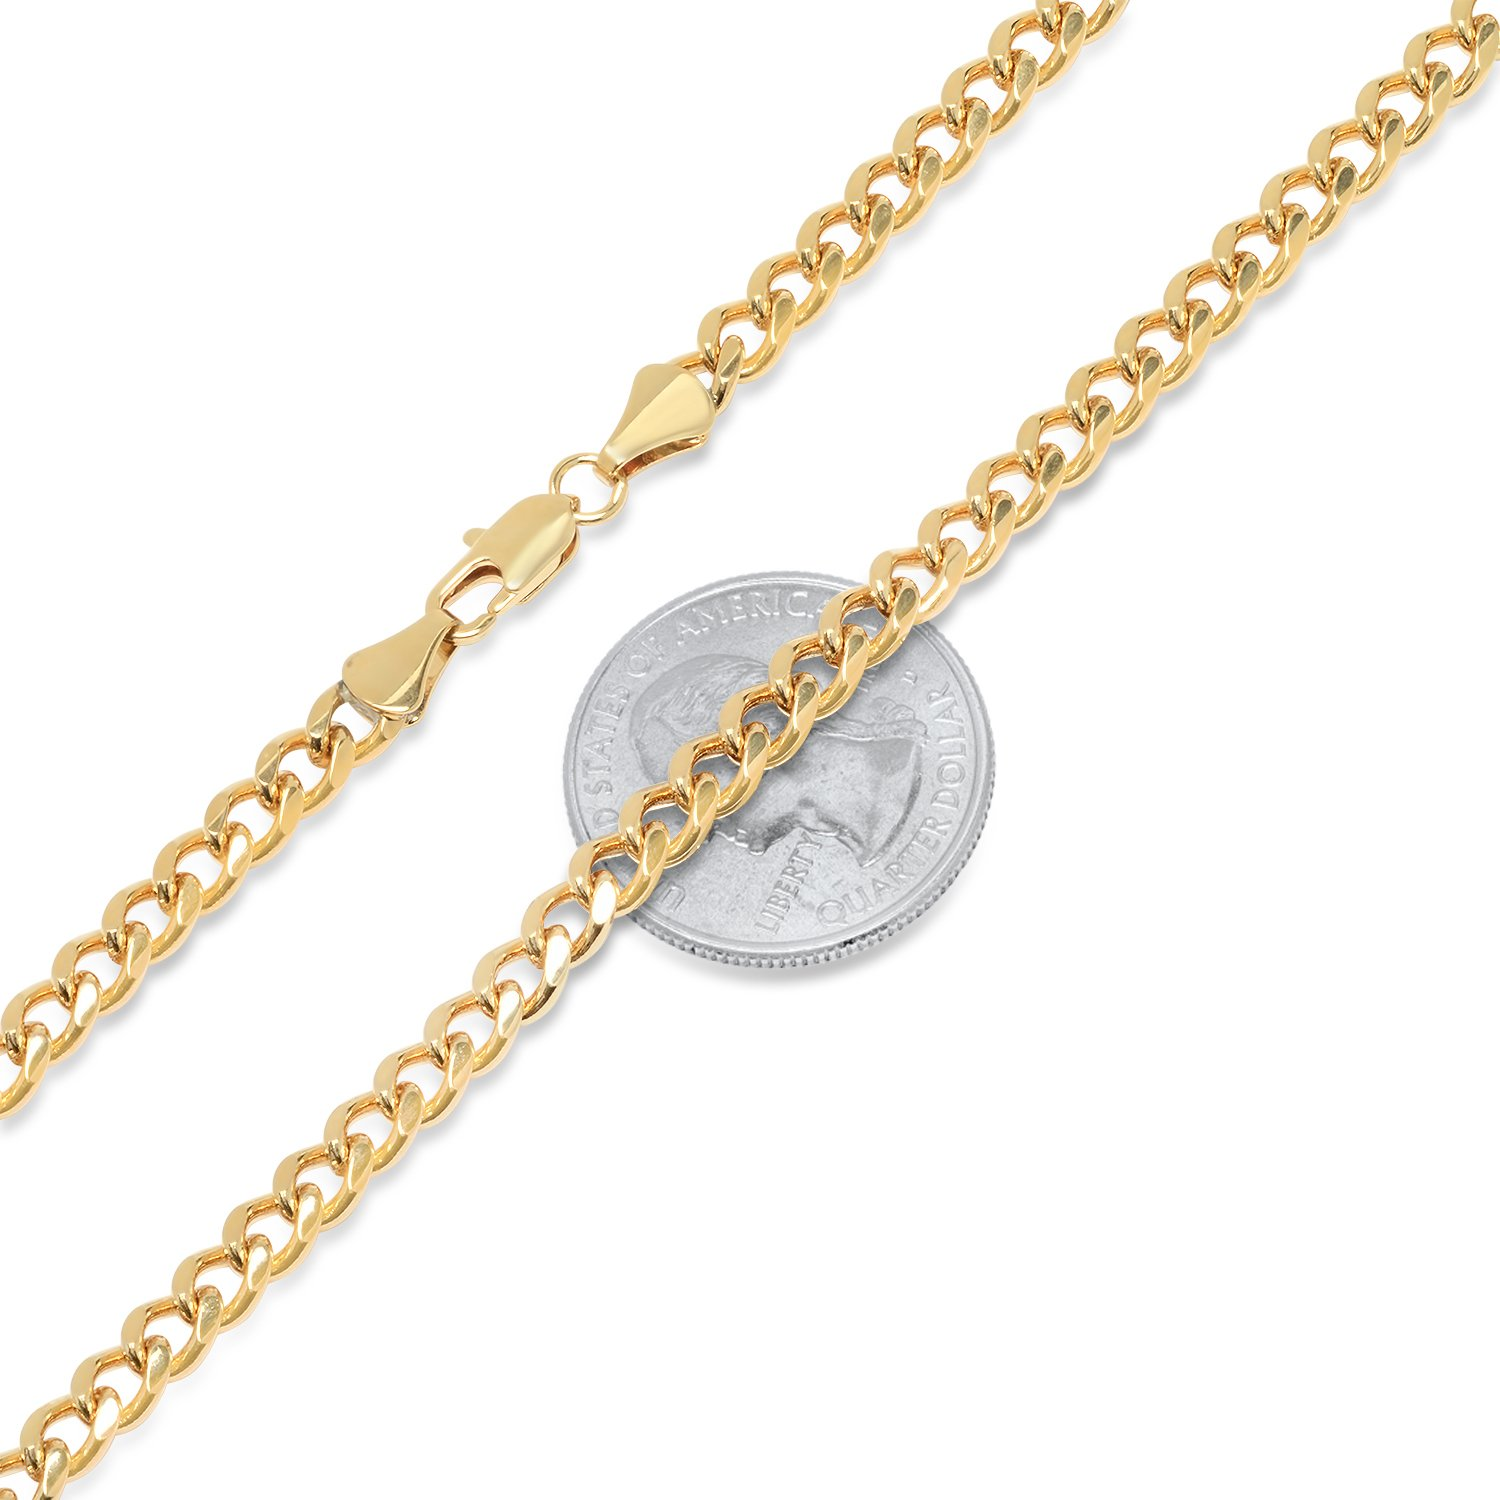 The Bling Factory 4.9mm 25 Mills 14k Gold Plated Curb Link Chain